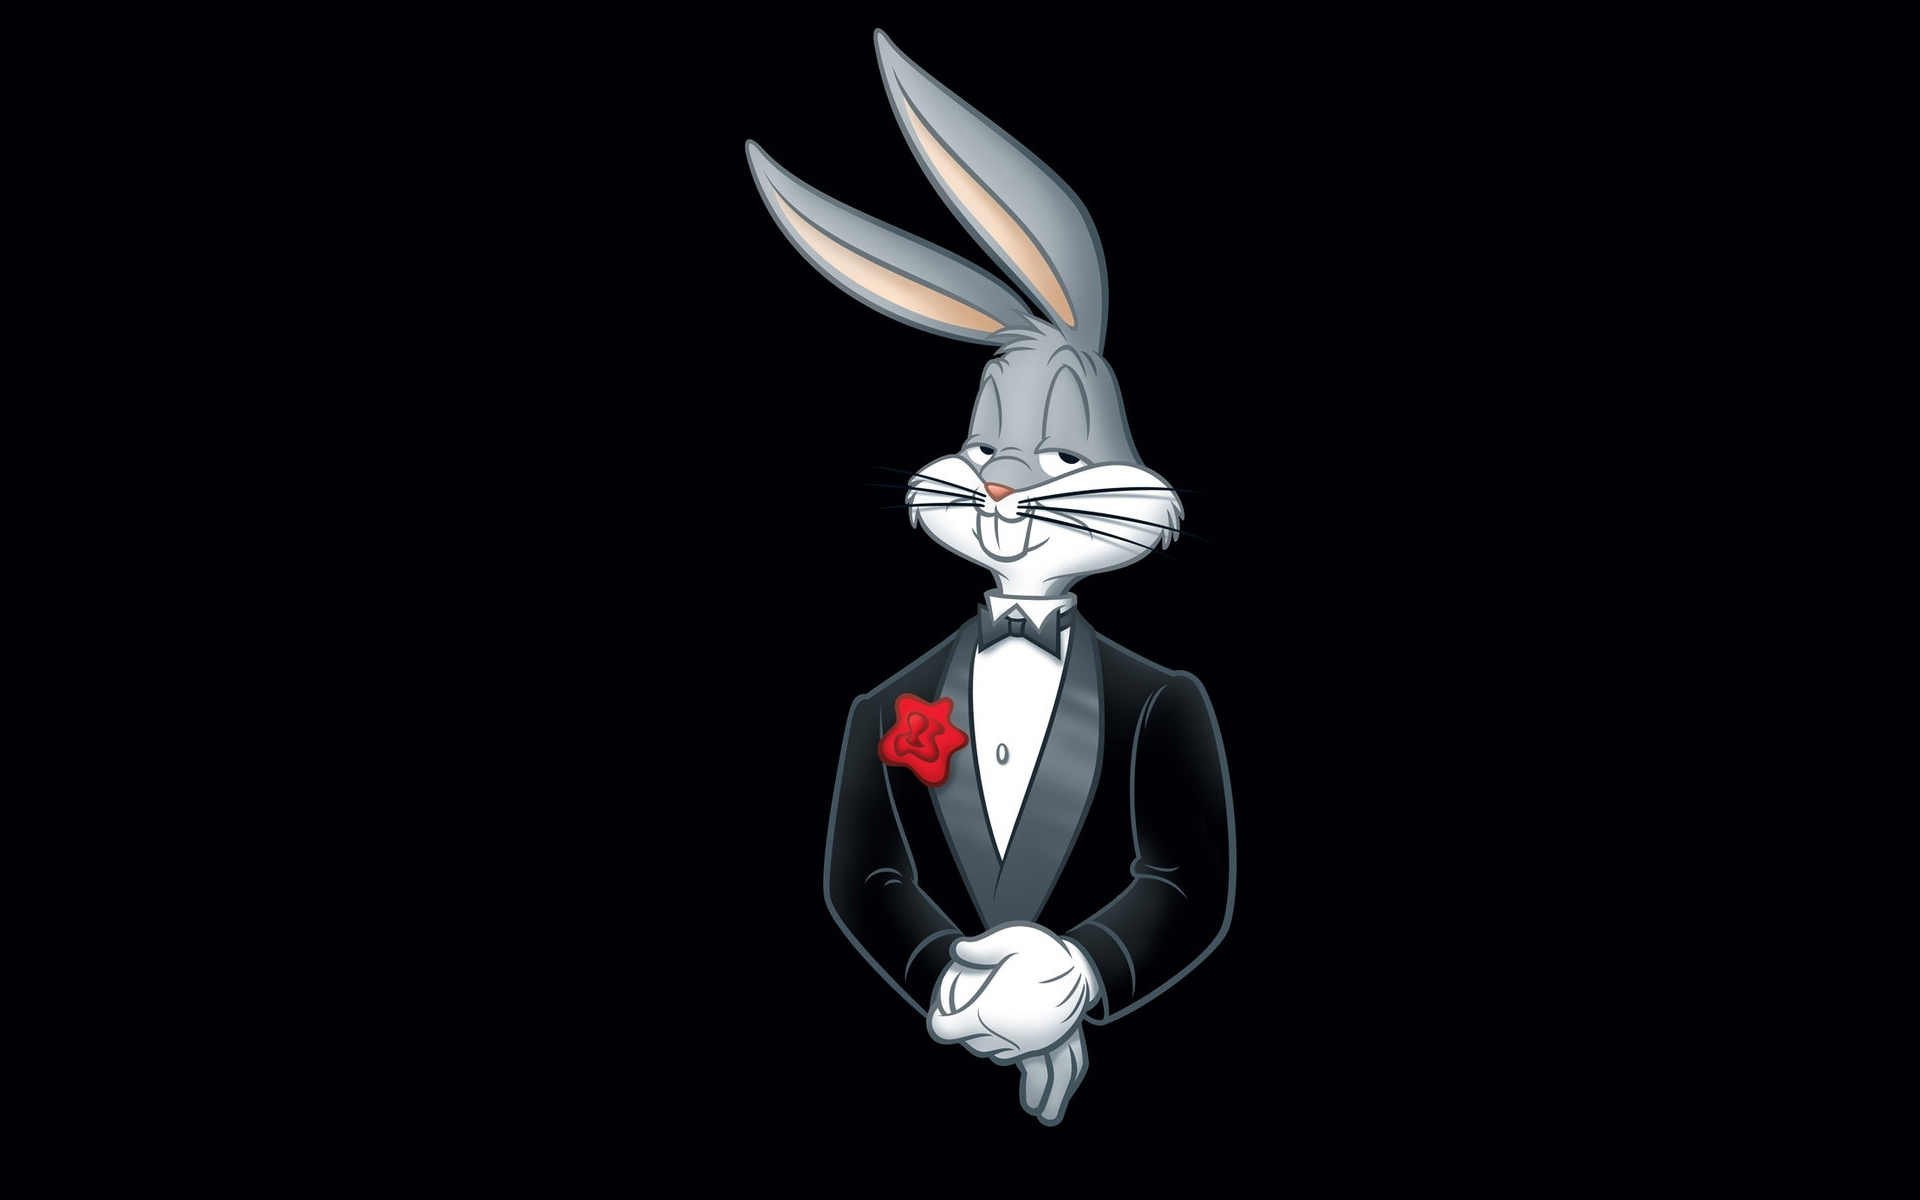 Bugs Bunny wallpaper 29775 1920x1200